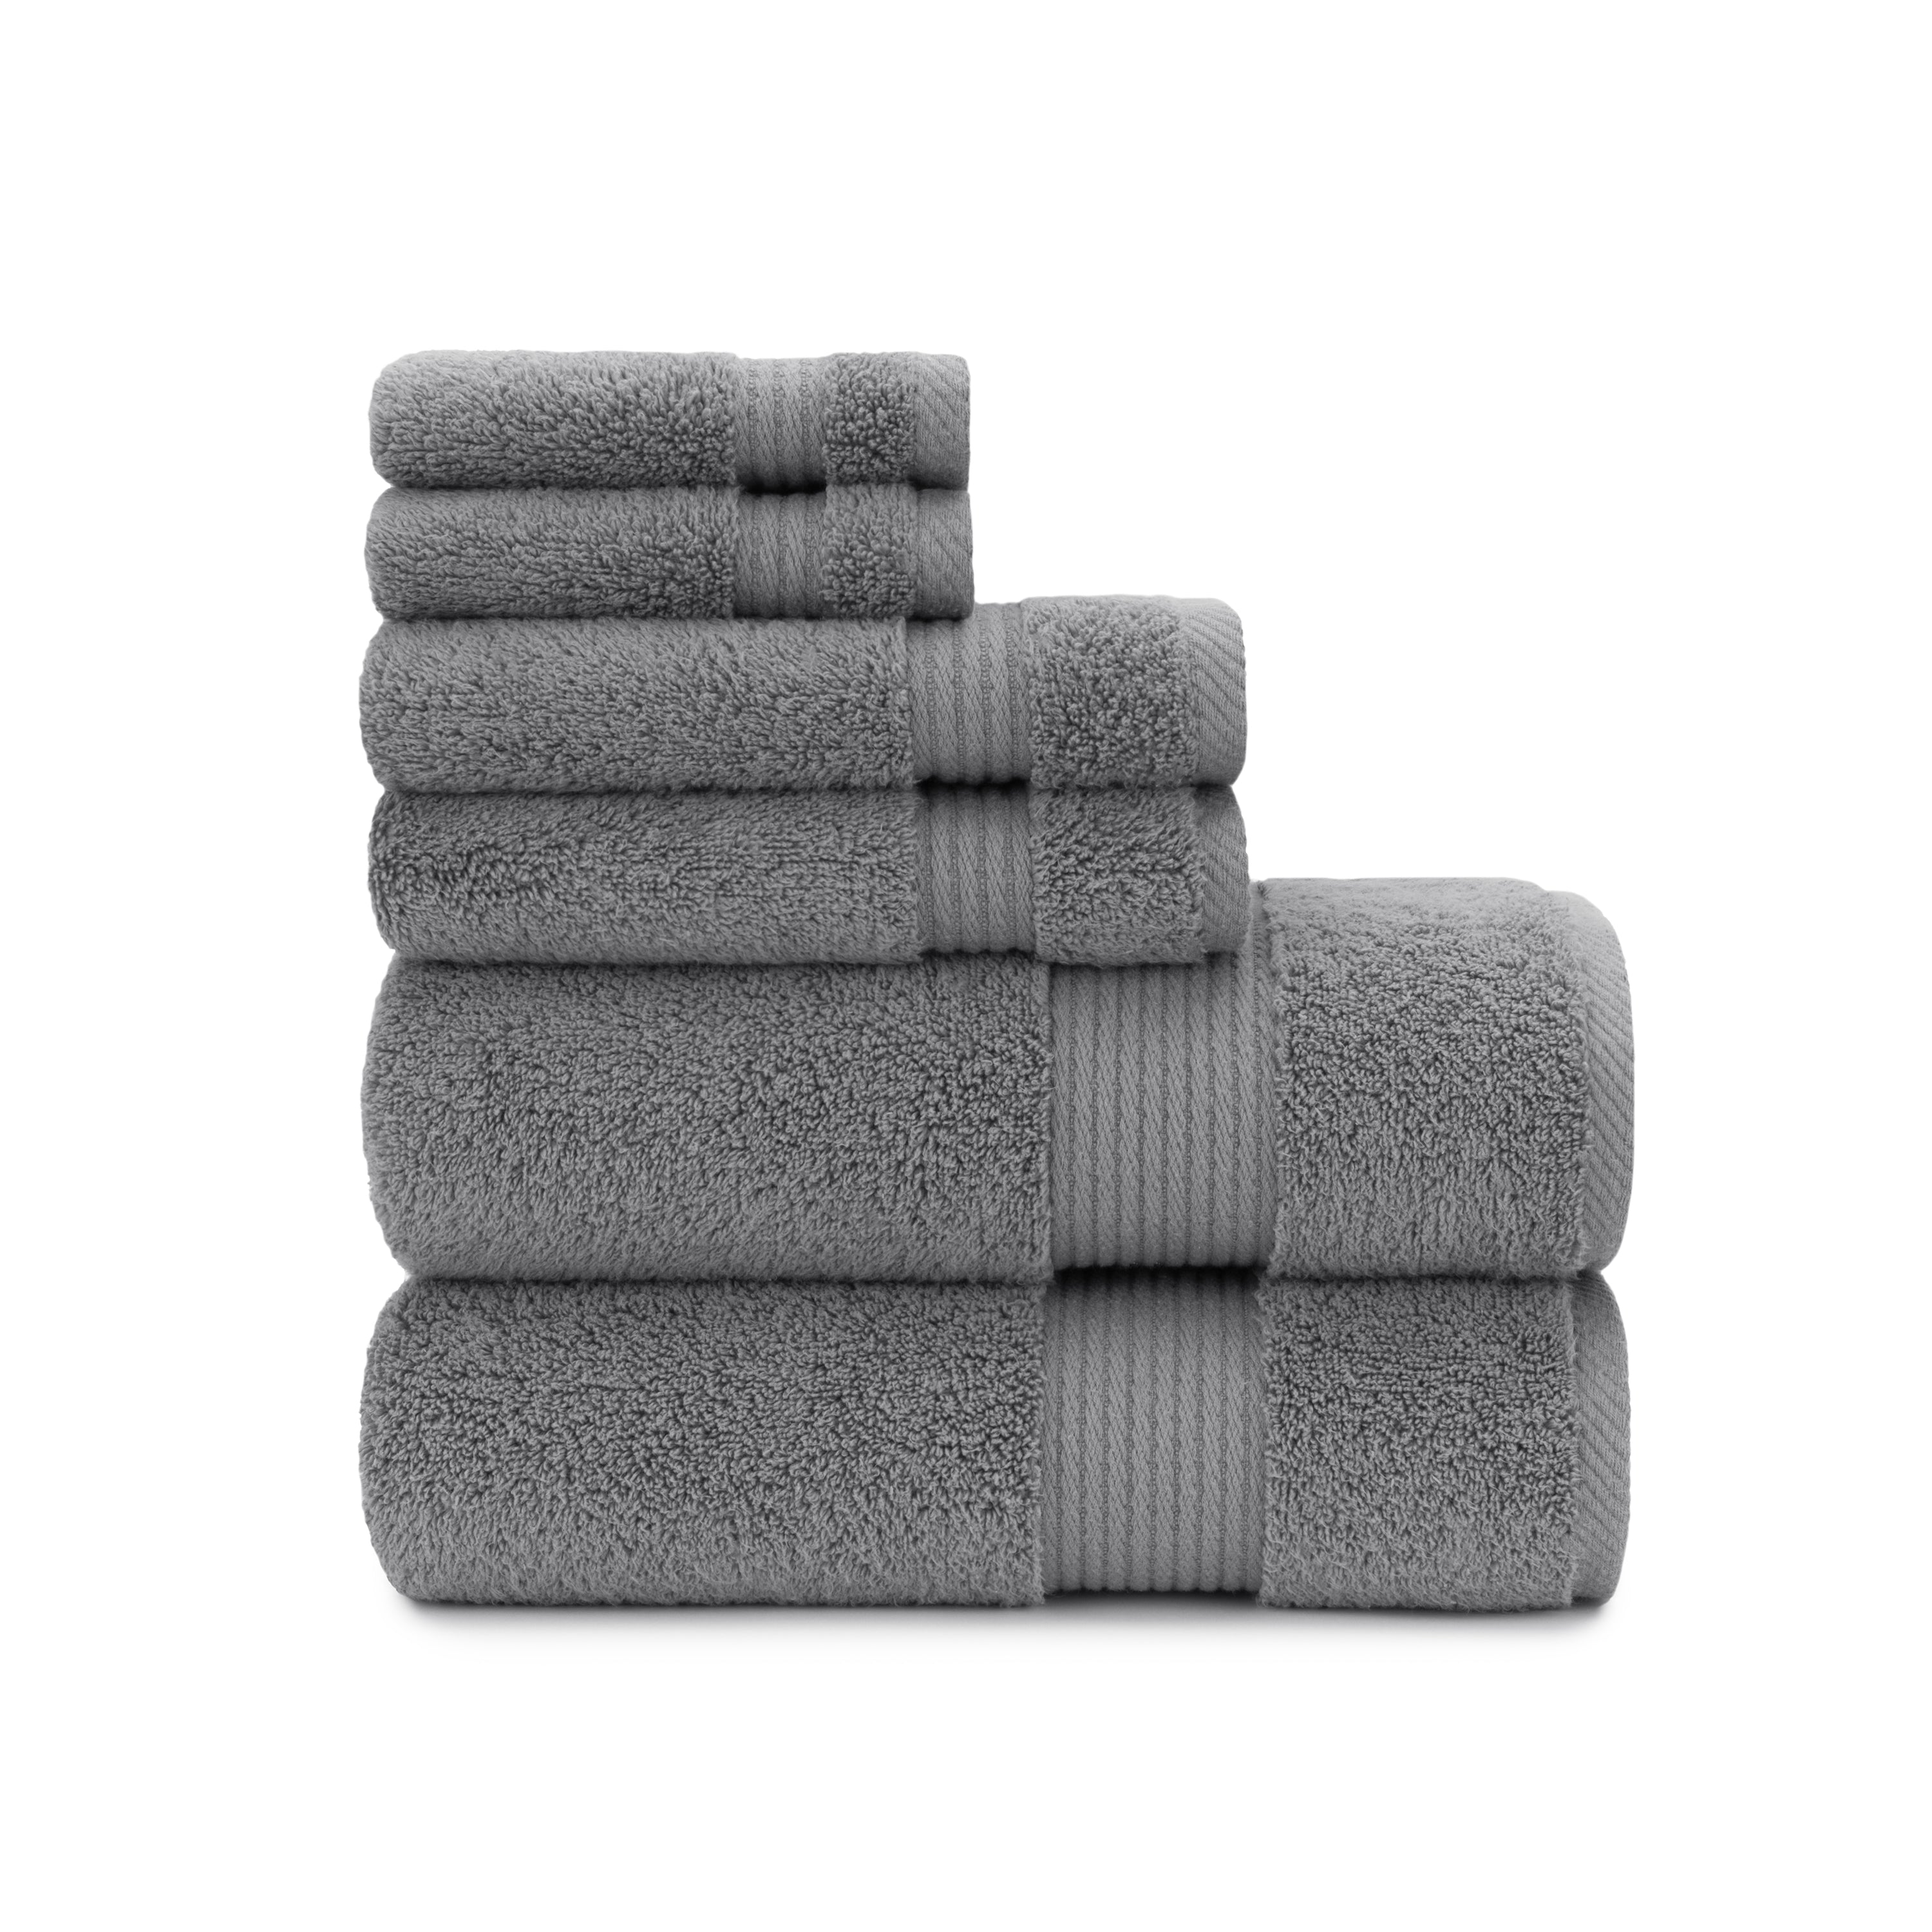 Astonishing Quality, Unique Zero Twist Plush Design, Plush Hand Towels, And  Two Extremely Absorbent Washcloths